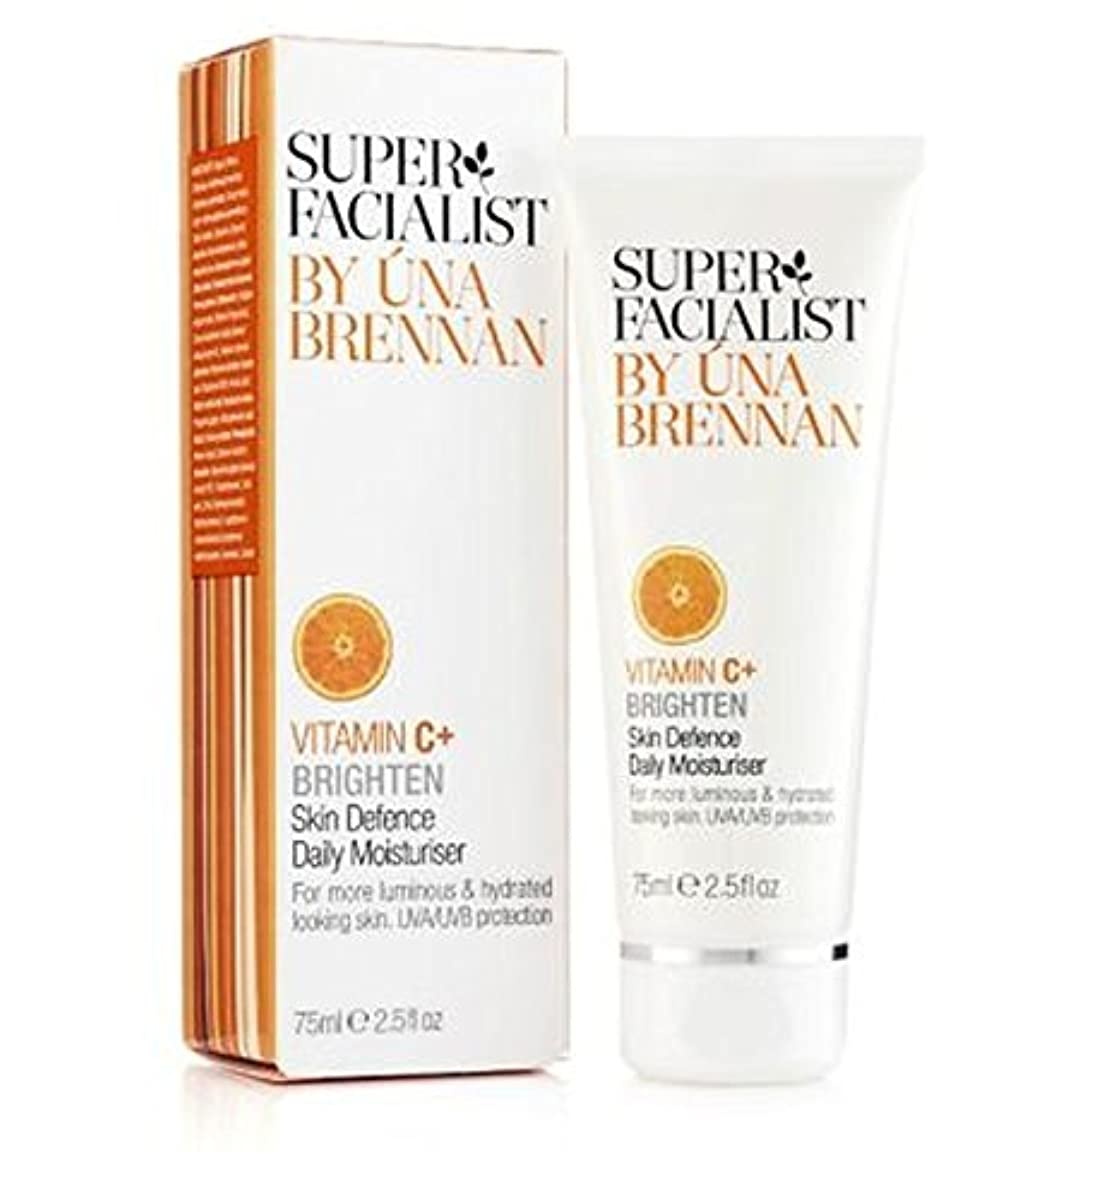 Super Facialist Vitamin C+ Skin Defence Daily Moisturiser 75ml - スーパーFacialistのビタミンC +皮膚の防衛毎日の保湿75ミリリットル (Superfacialist...